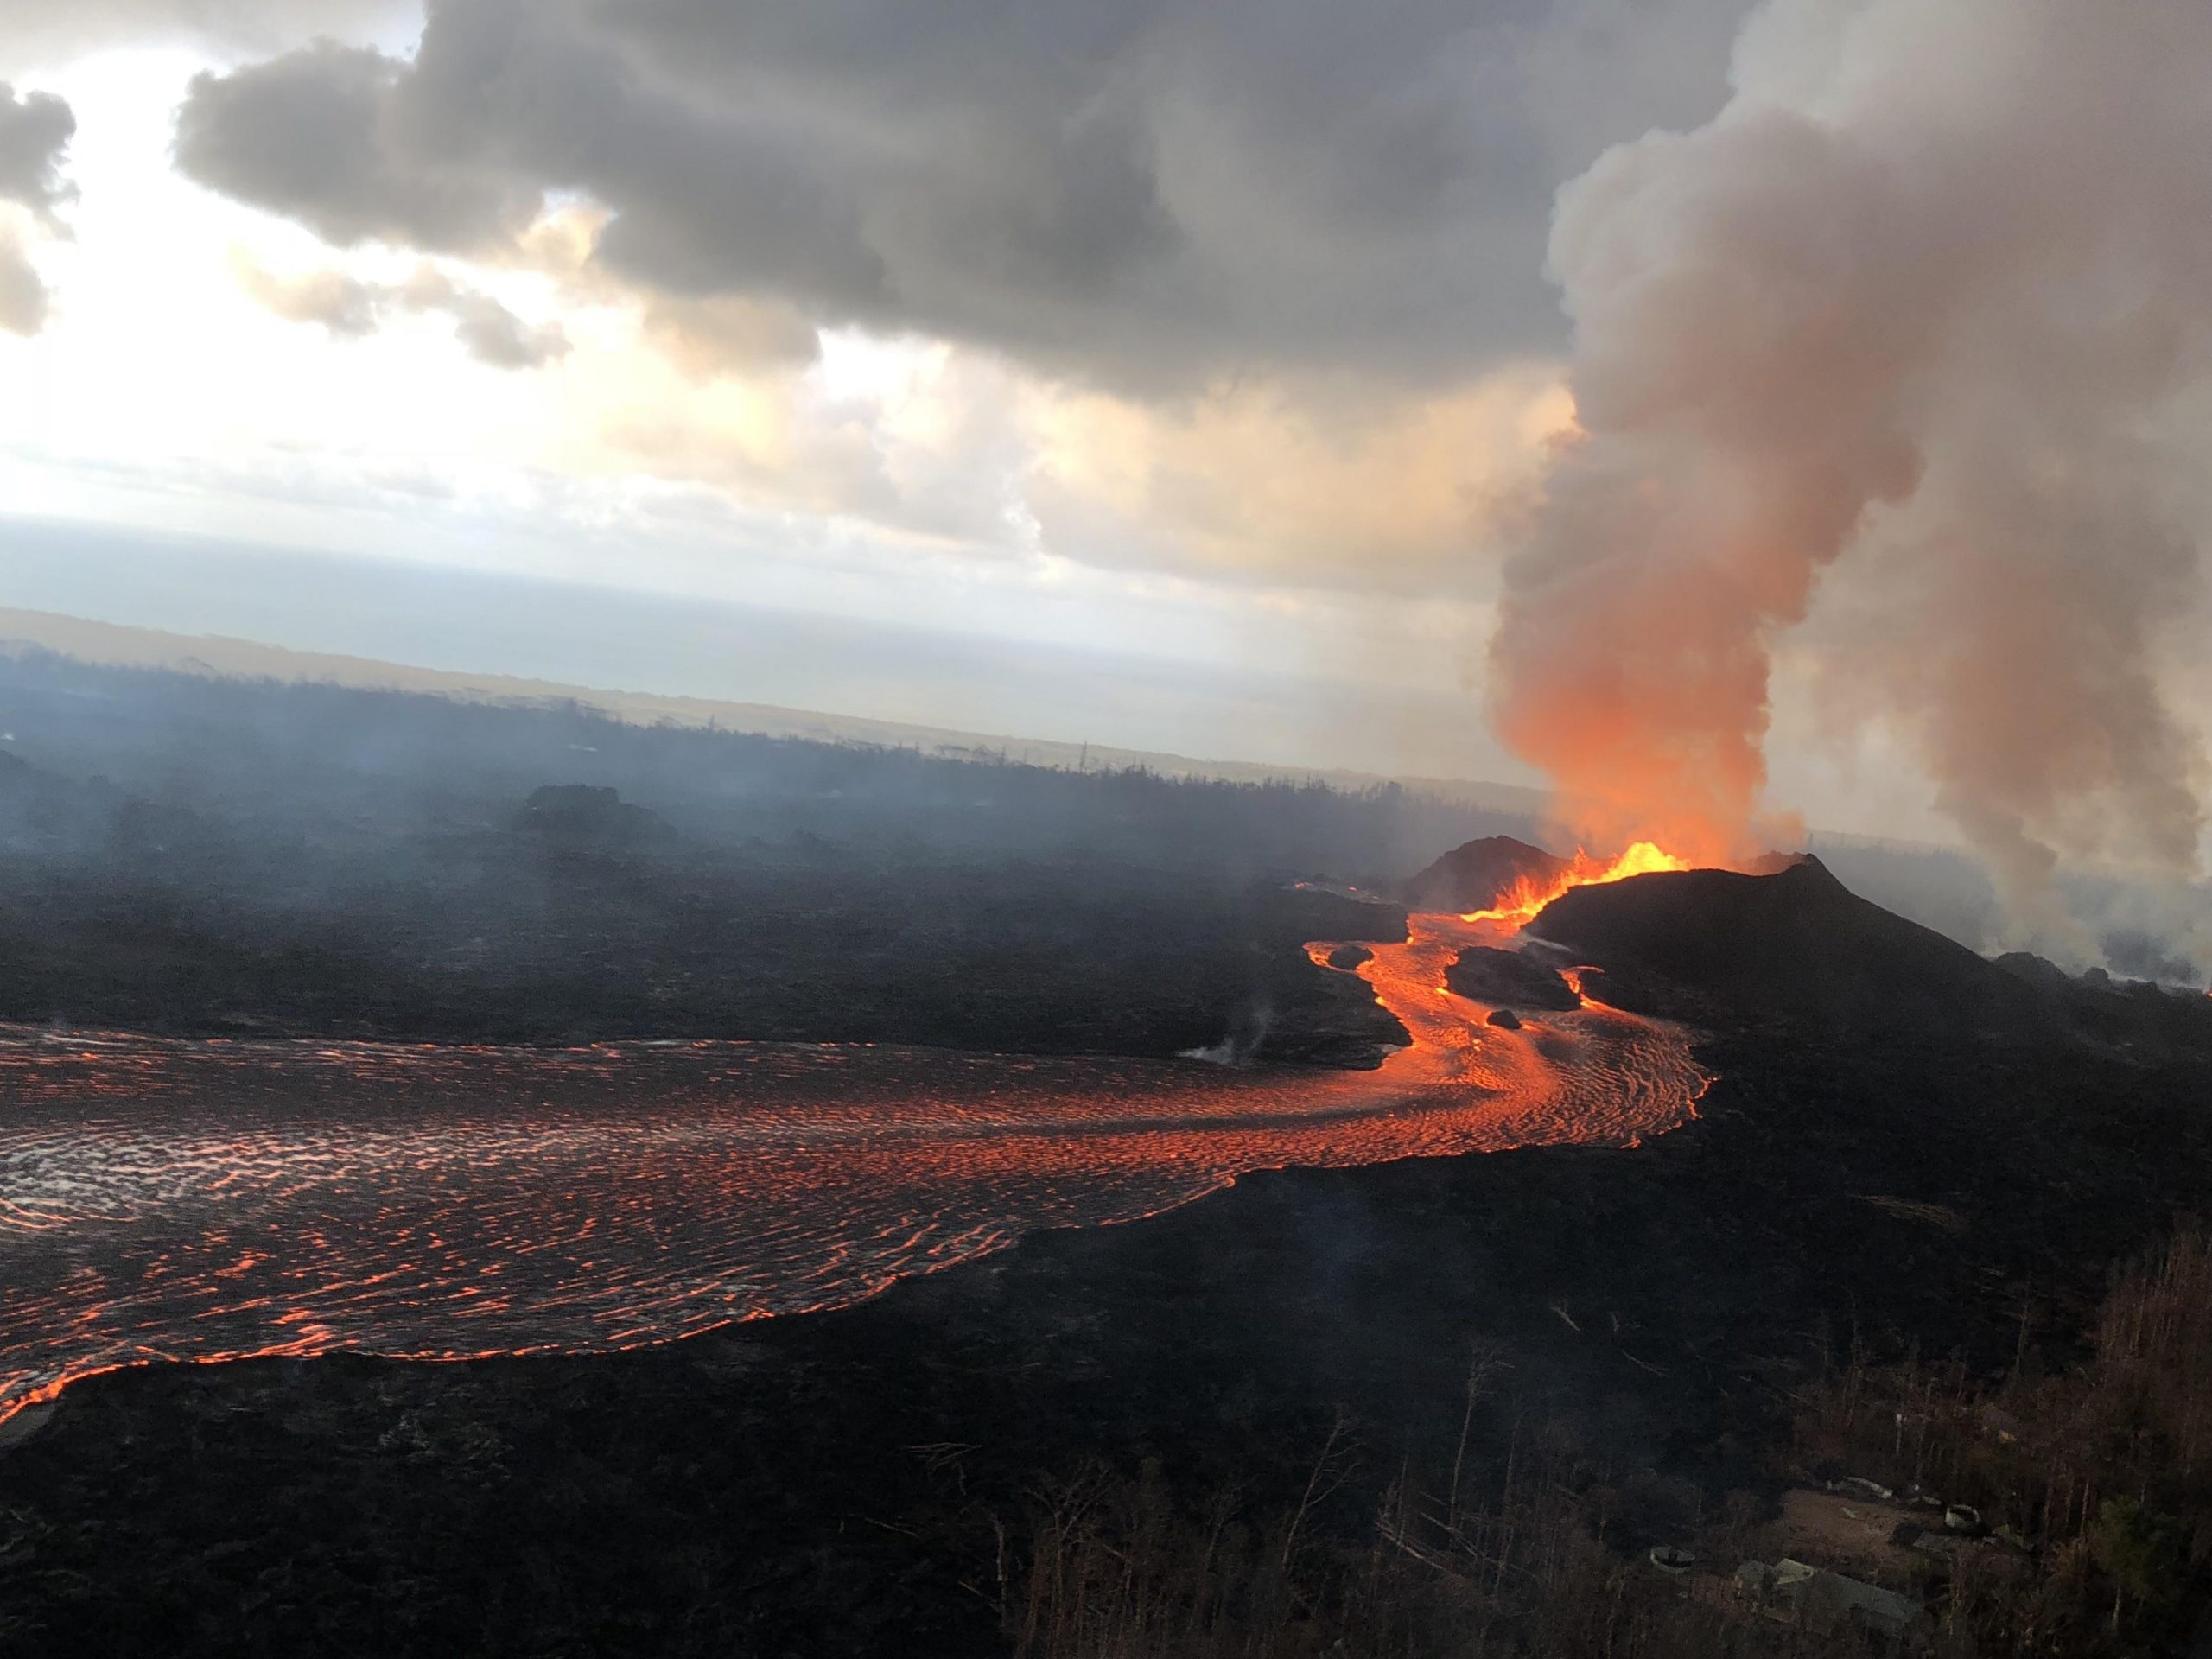 Study: 2018 Kīlauea Volcano Eruption Triggered by Decade-Long Pressure Buildup